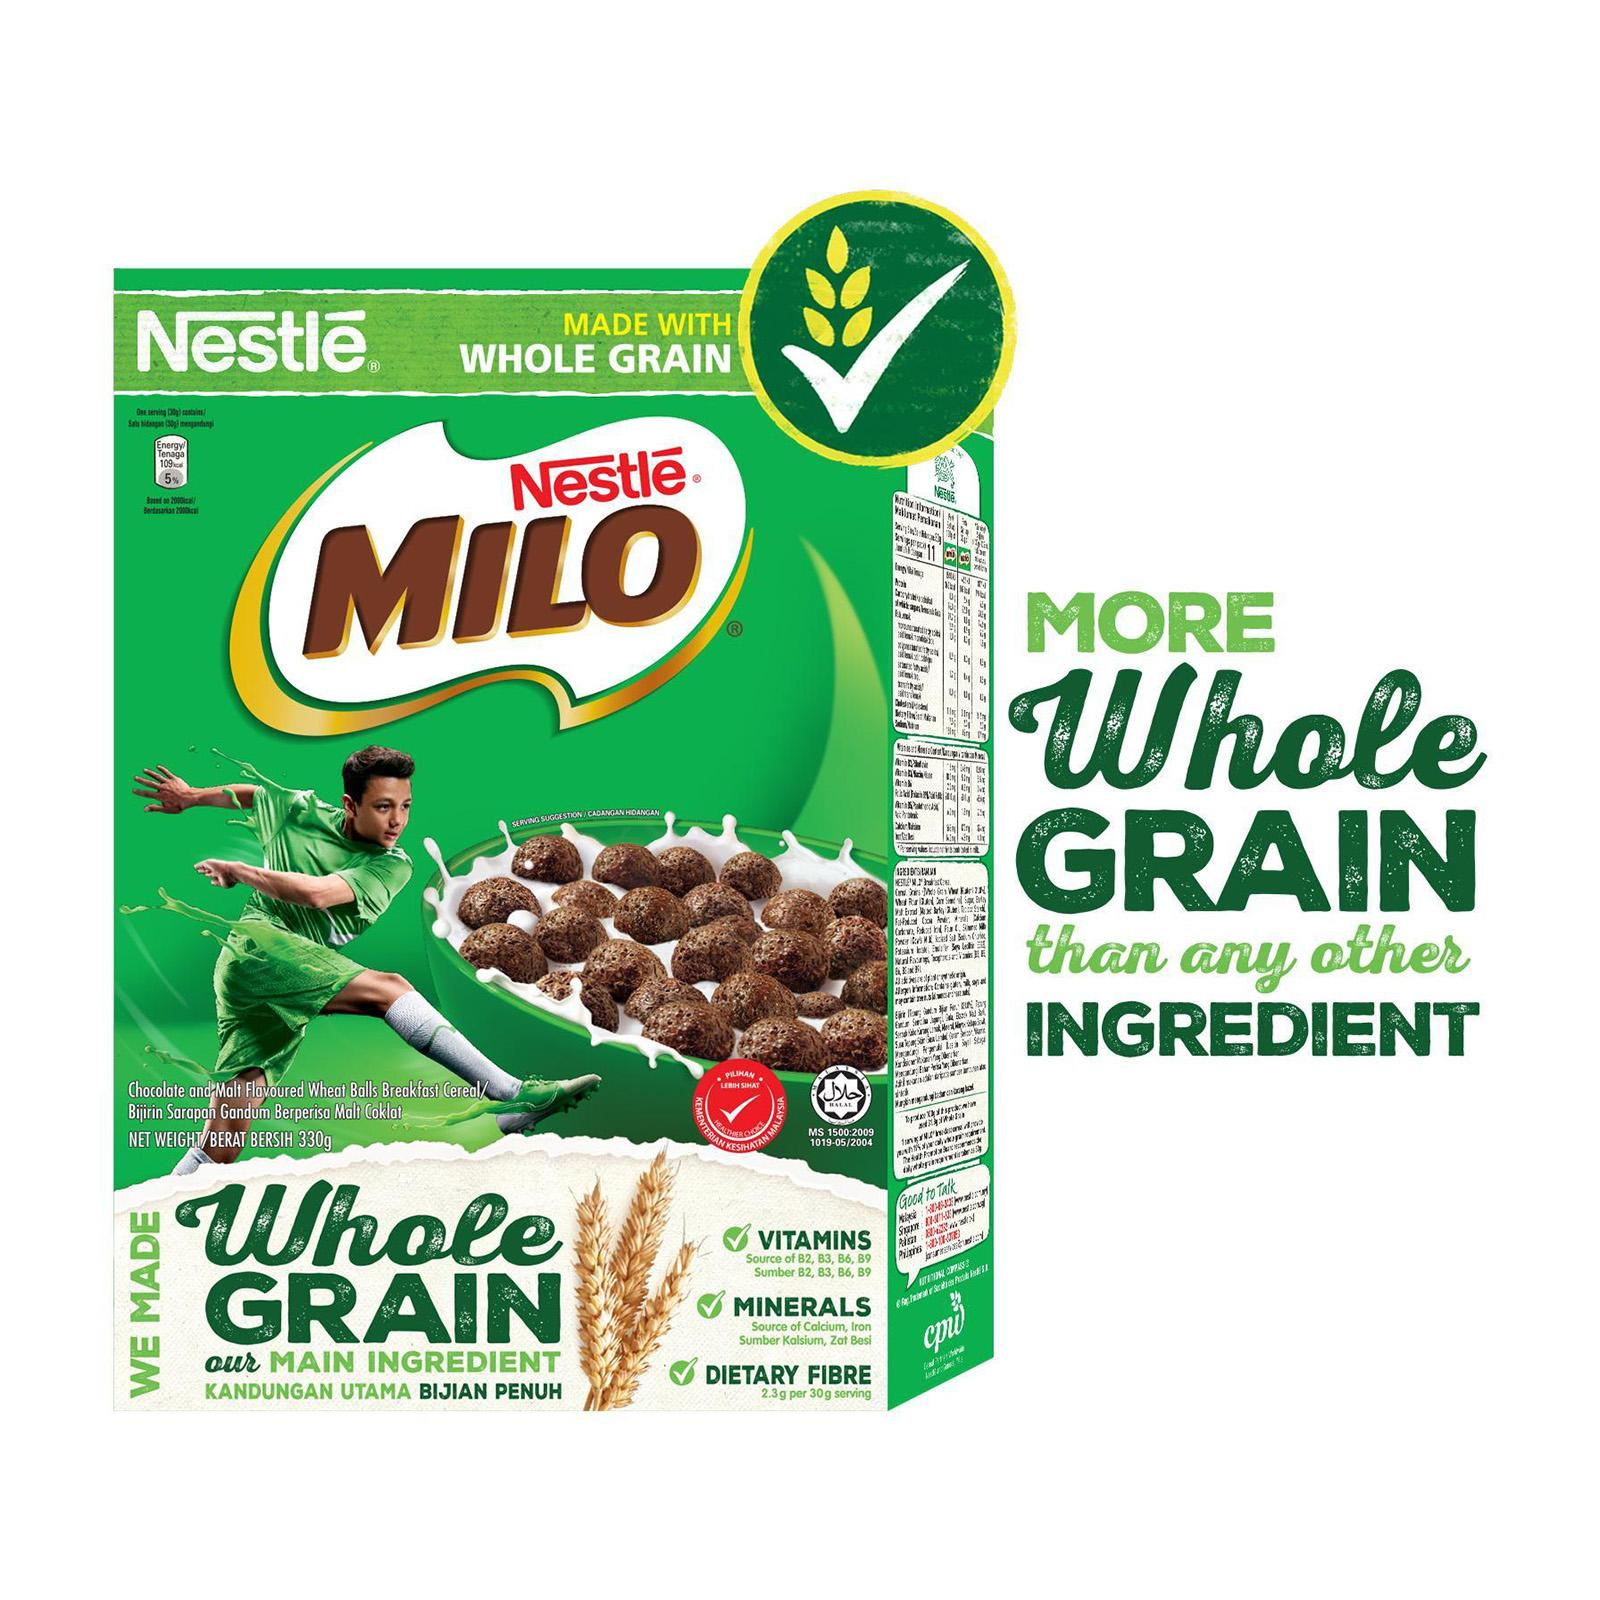 NESTLE MILO Breakfast Cereal With Whole Grain